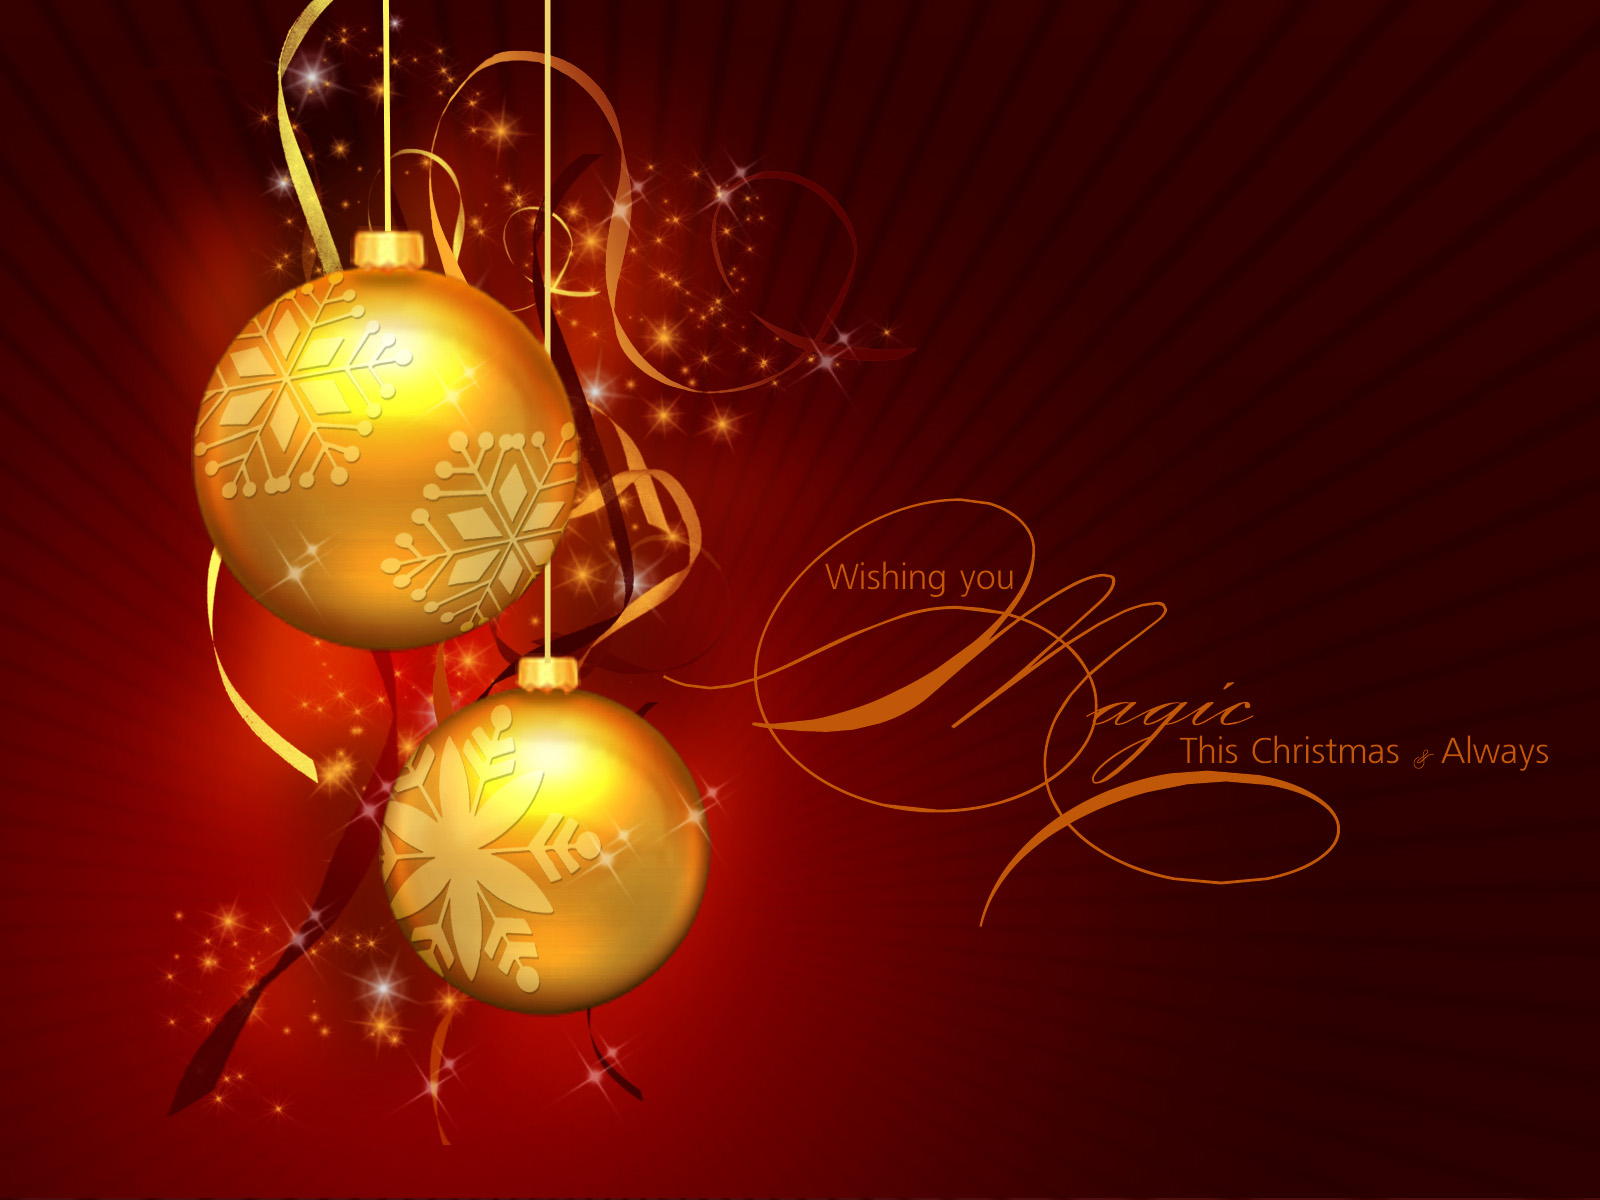 Download wallpapers Download Christmas 2010 wallpapers 1600x1200